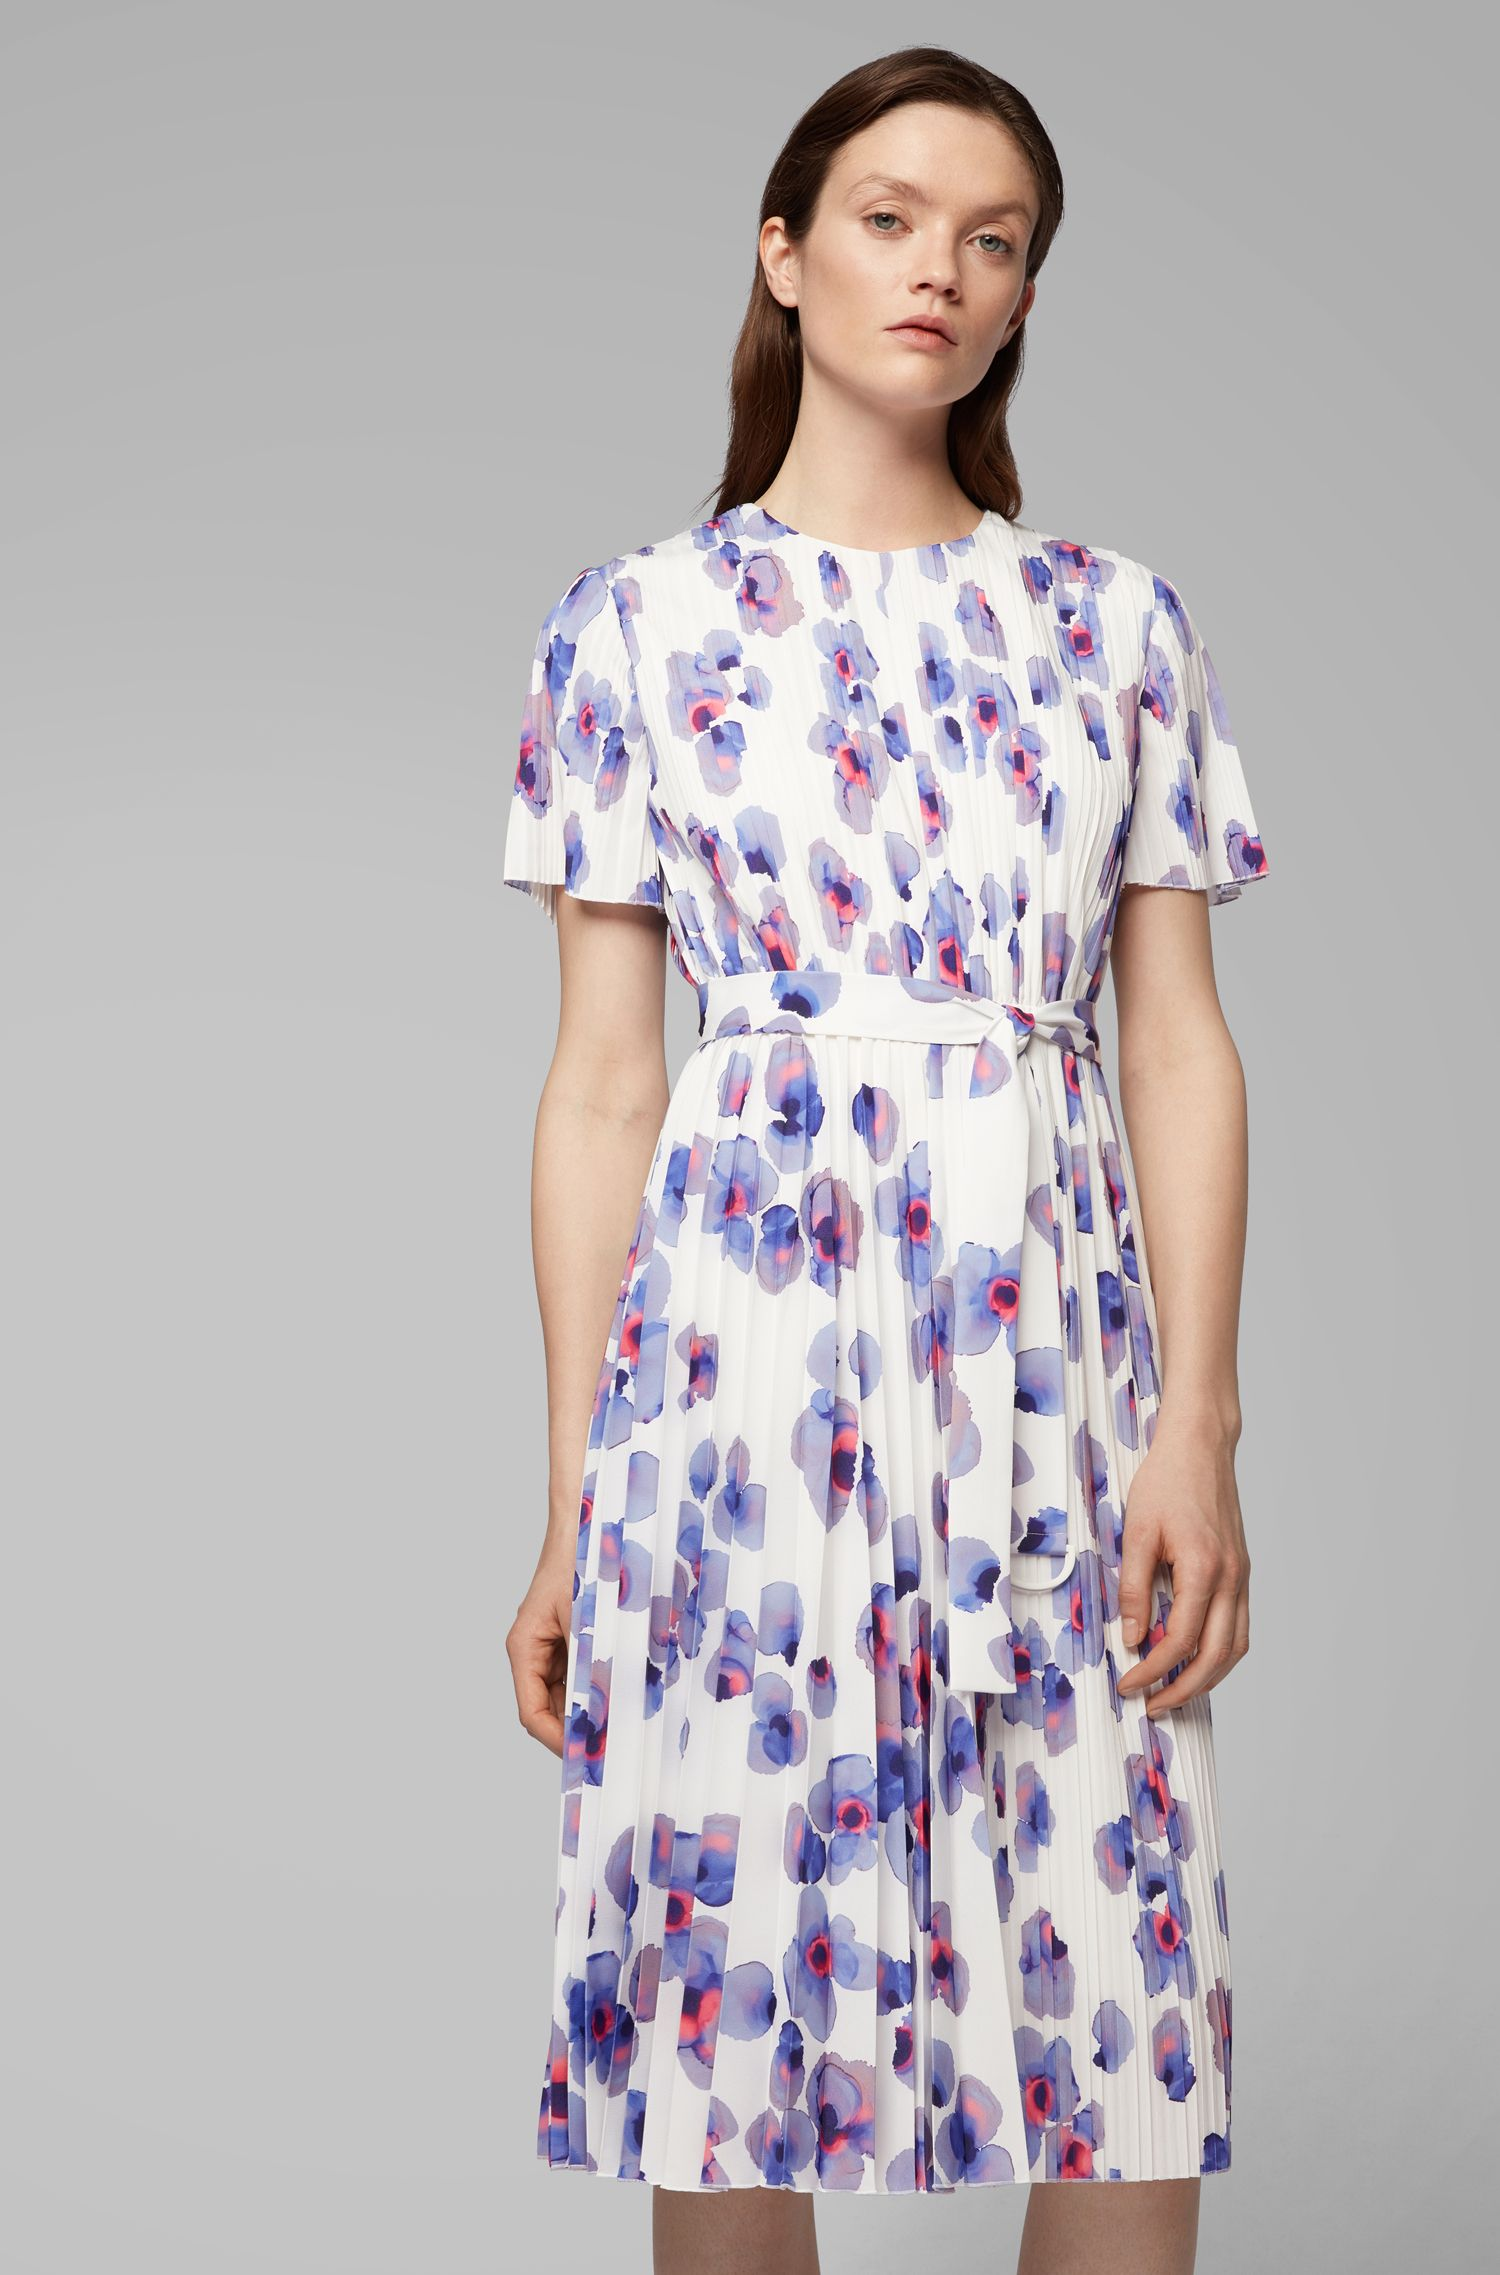 Plissé dress with permanent pleats and floral print, Patterned